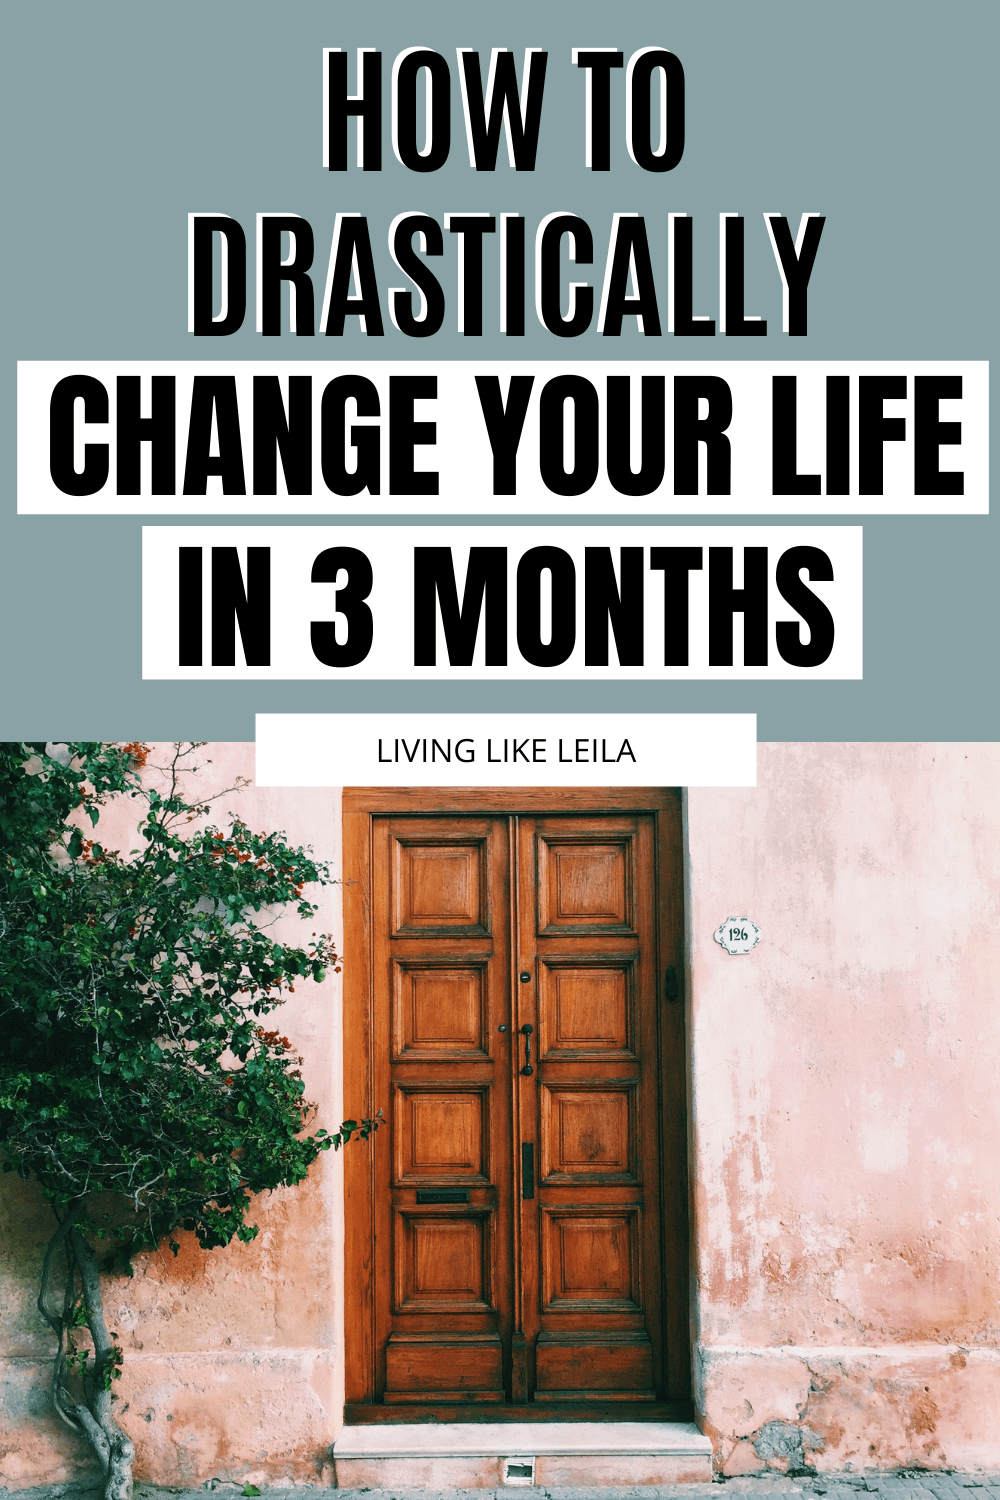 You can drastically change your life in a matter of months. But how do you go about starting? Read how at LivinglikeLeila.com